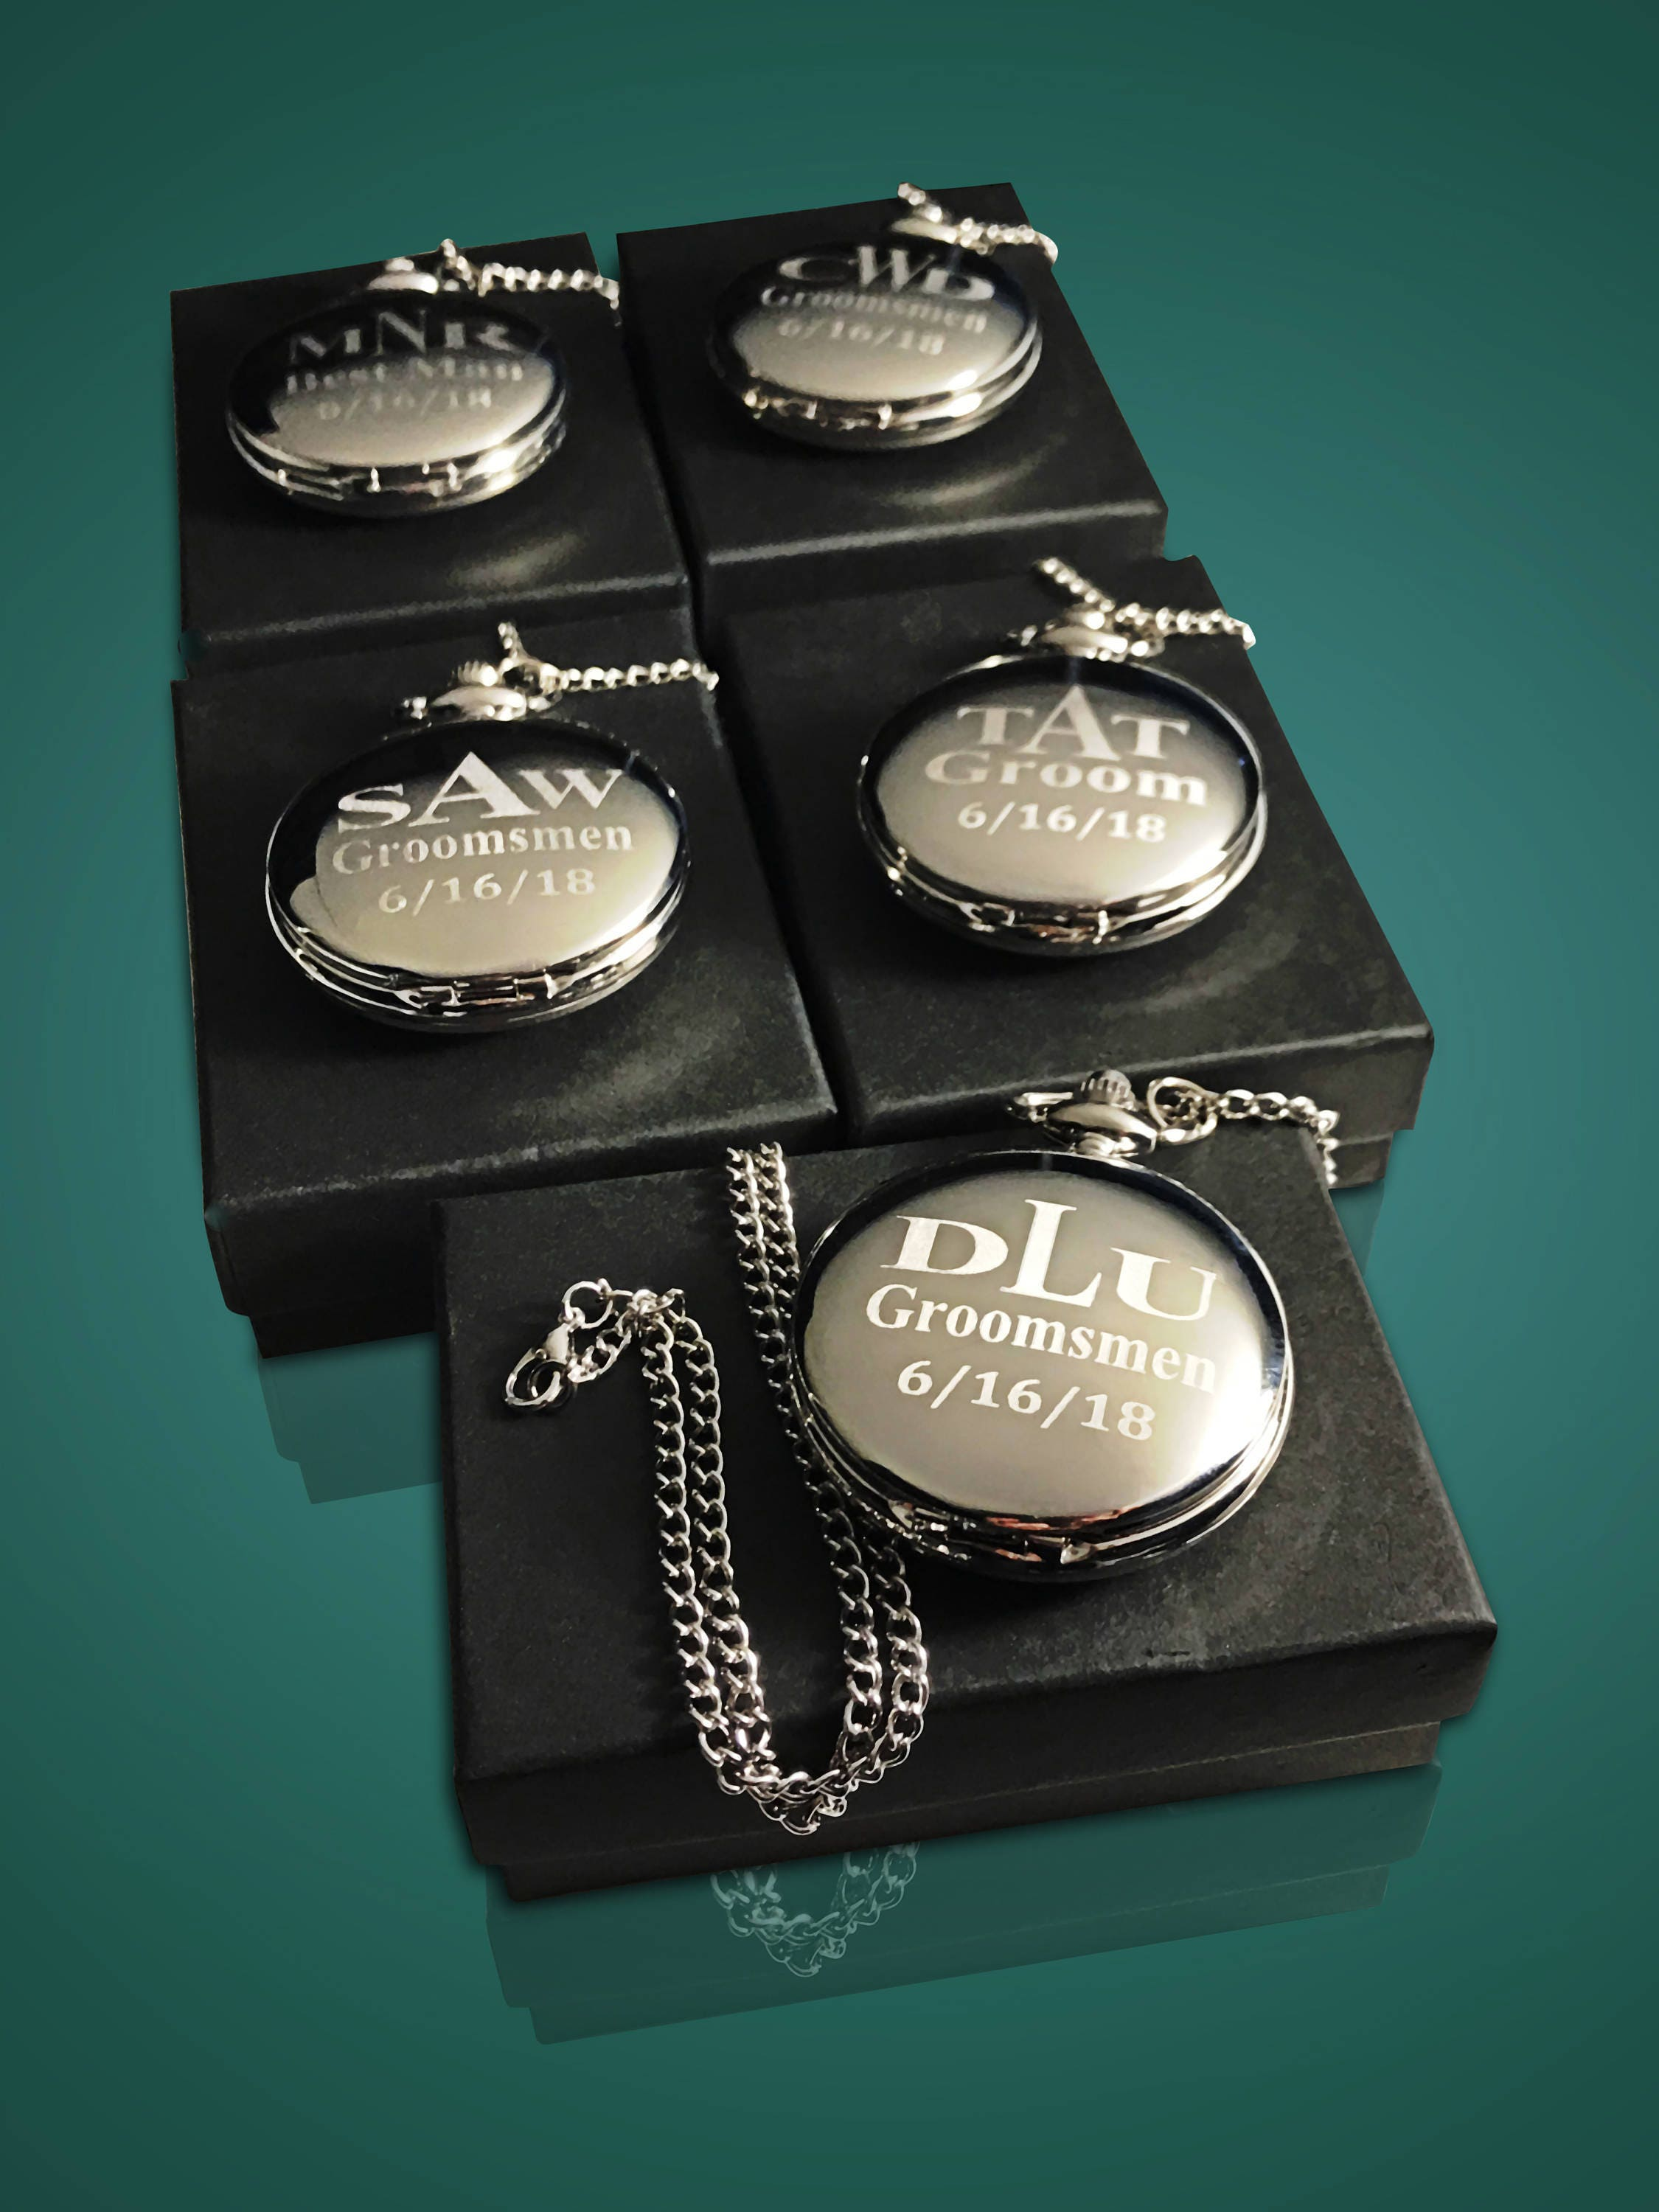 13 Groomsmen Pocket Watches 13 Personalized Groomsmen Gifts